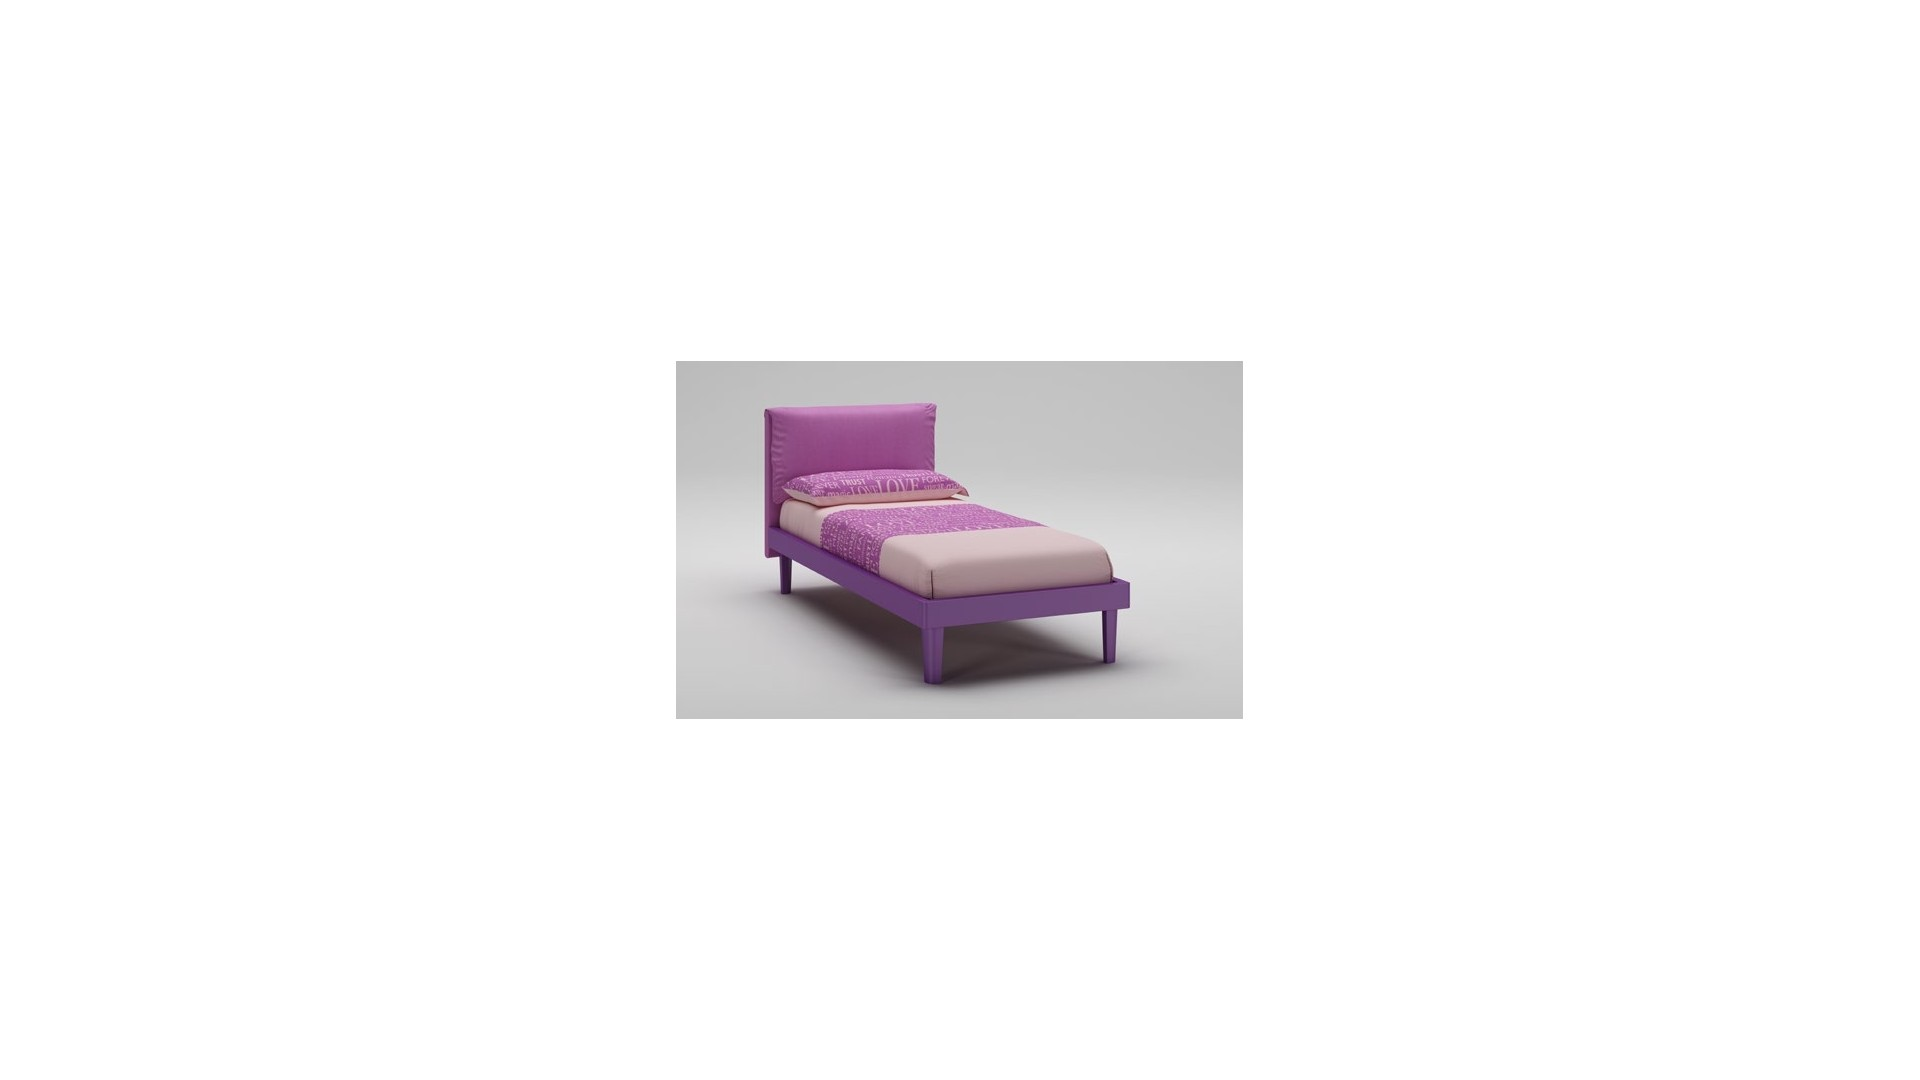 lit fille avec t te de lit rembourr e mauve moretti compact so nuit. Black Bedroom Furniture Sets. Home Design Ideas